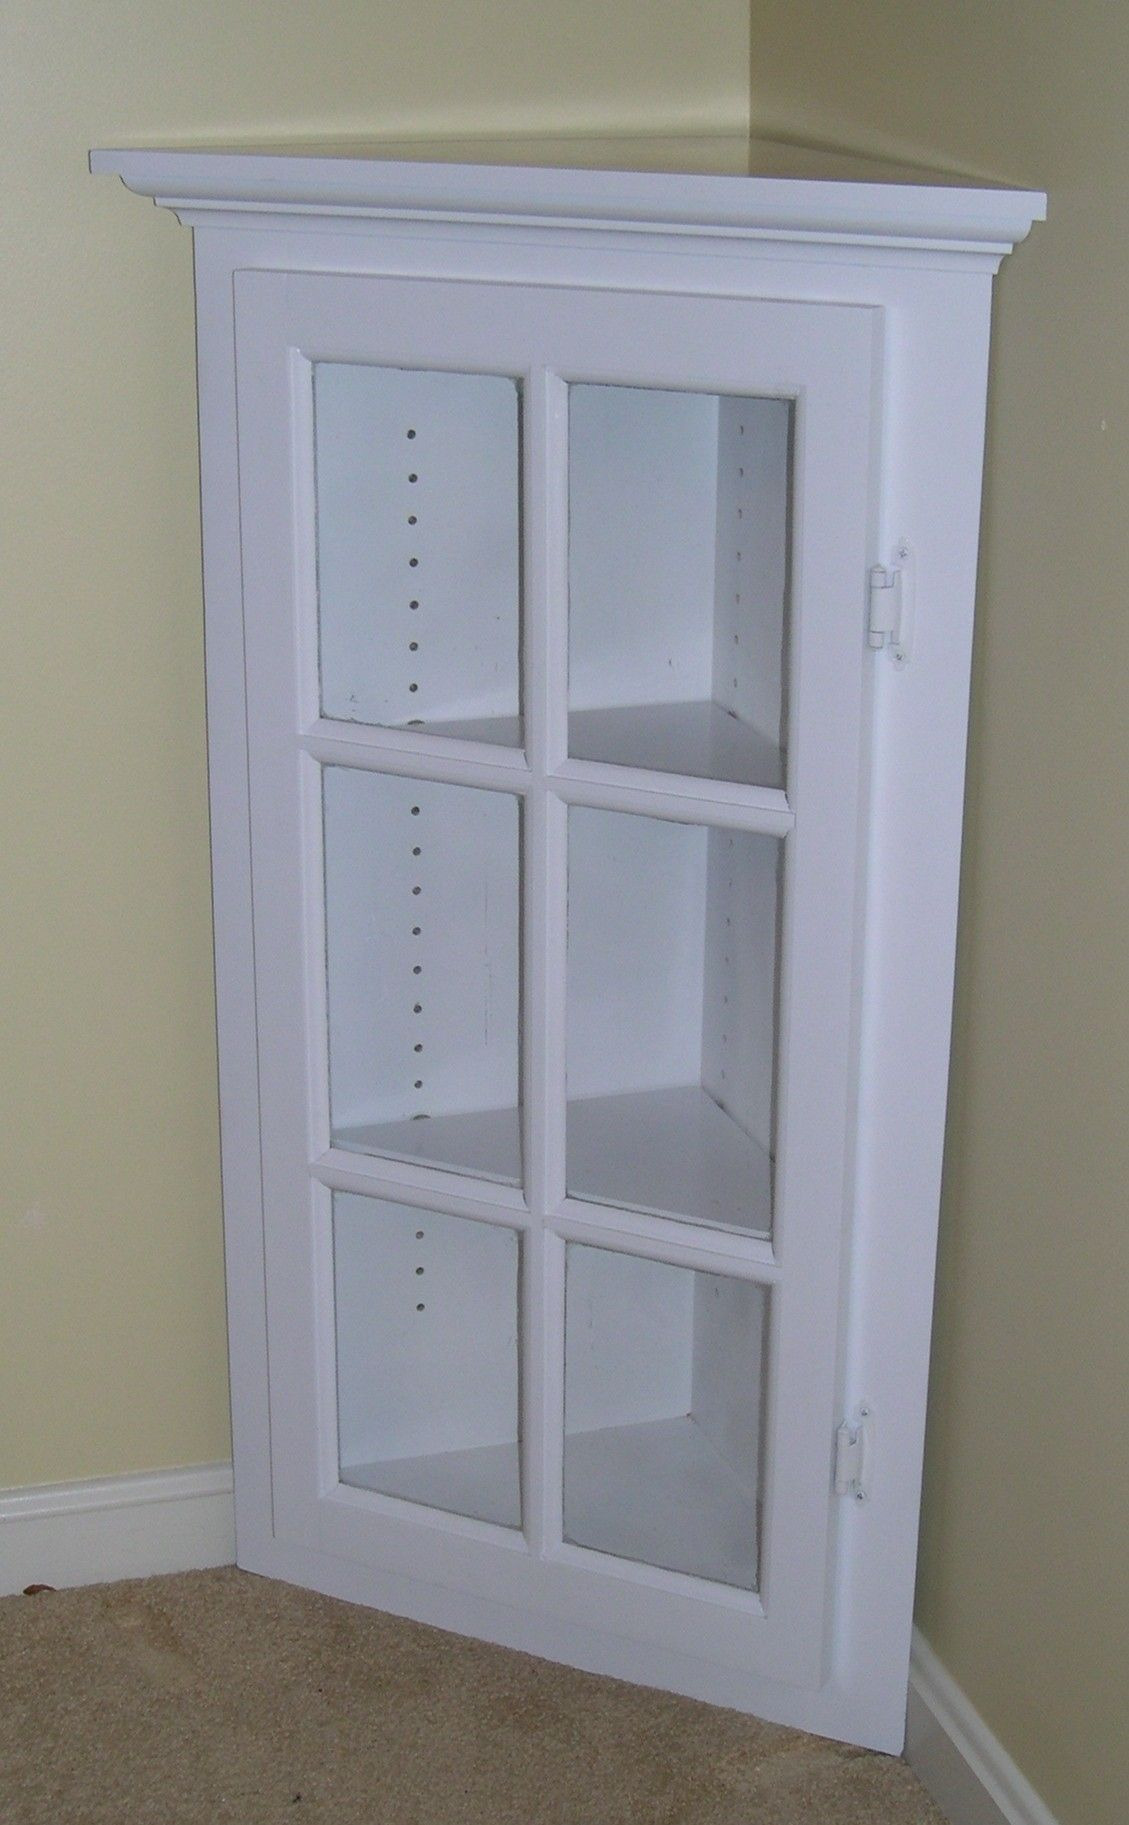 Linen Cabinet with Glass Doors Fresh White Corner Cabinet with Glass Doors